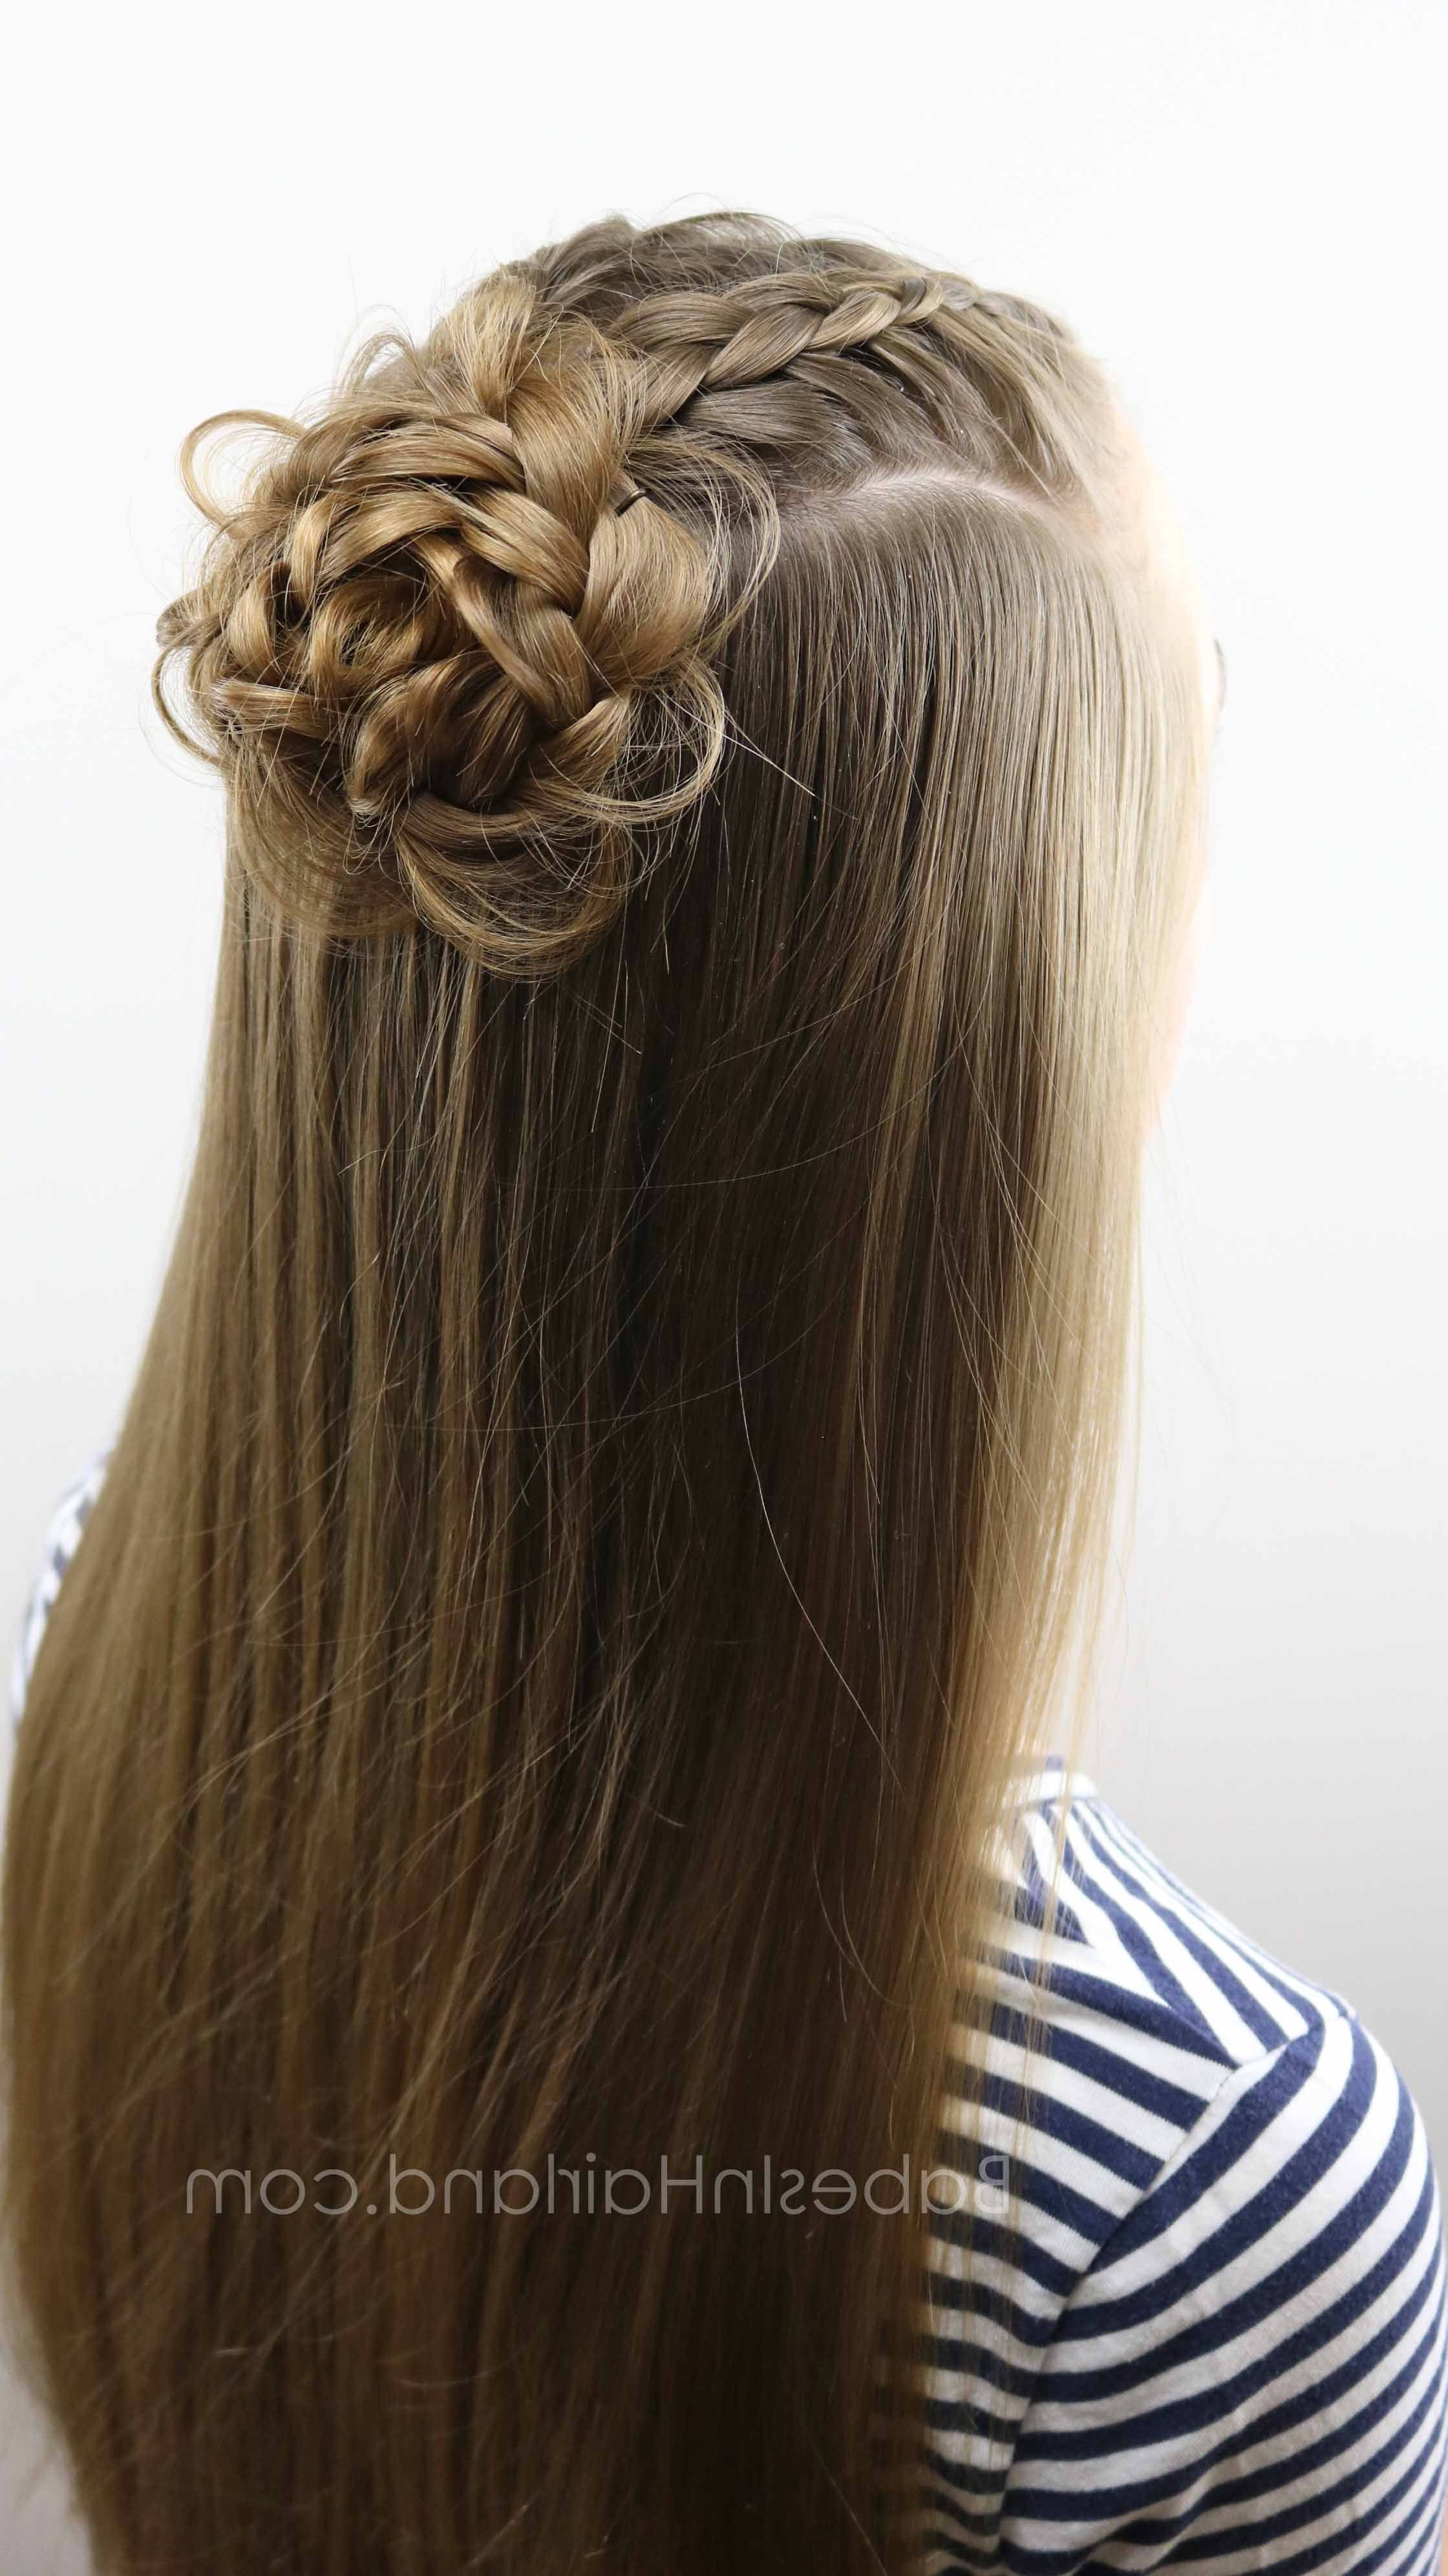 Fashionable Ponytail Hairstyles With Dutch Braid Within 2 Dutch Braids 5 Different Hairstyles (View 13 of 20)